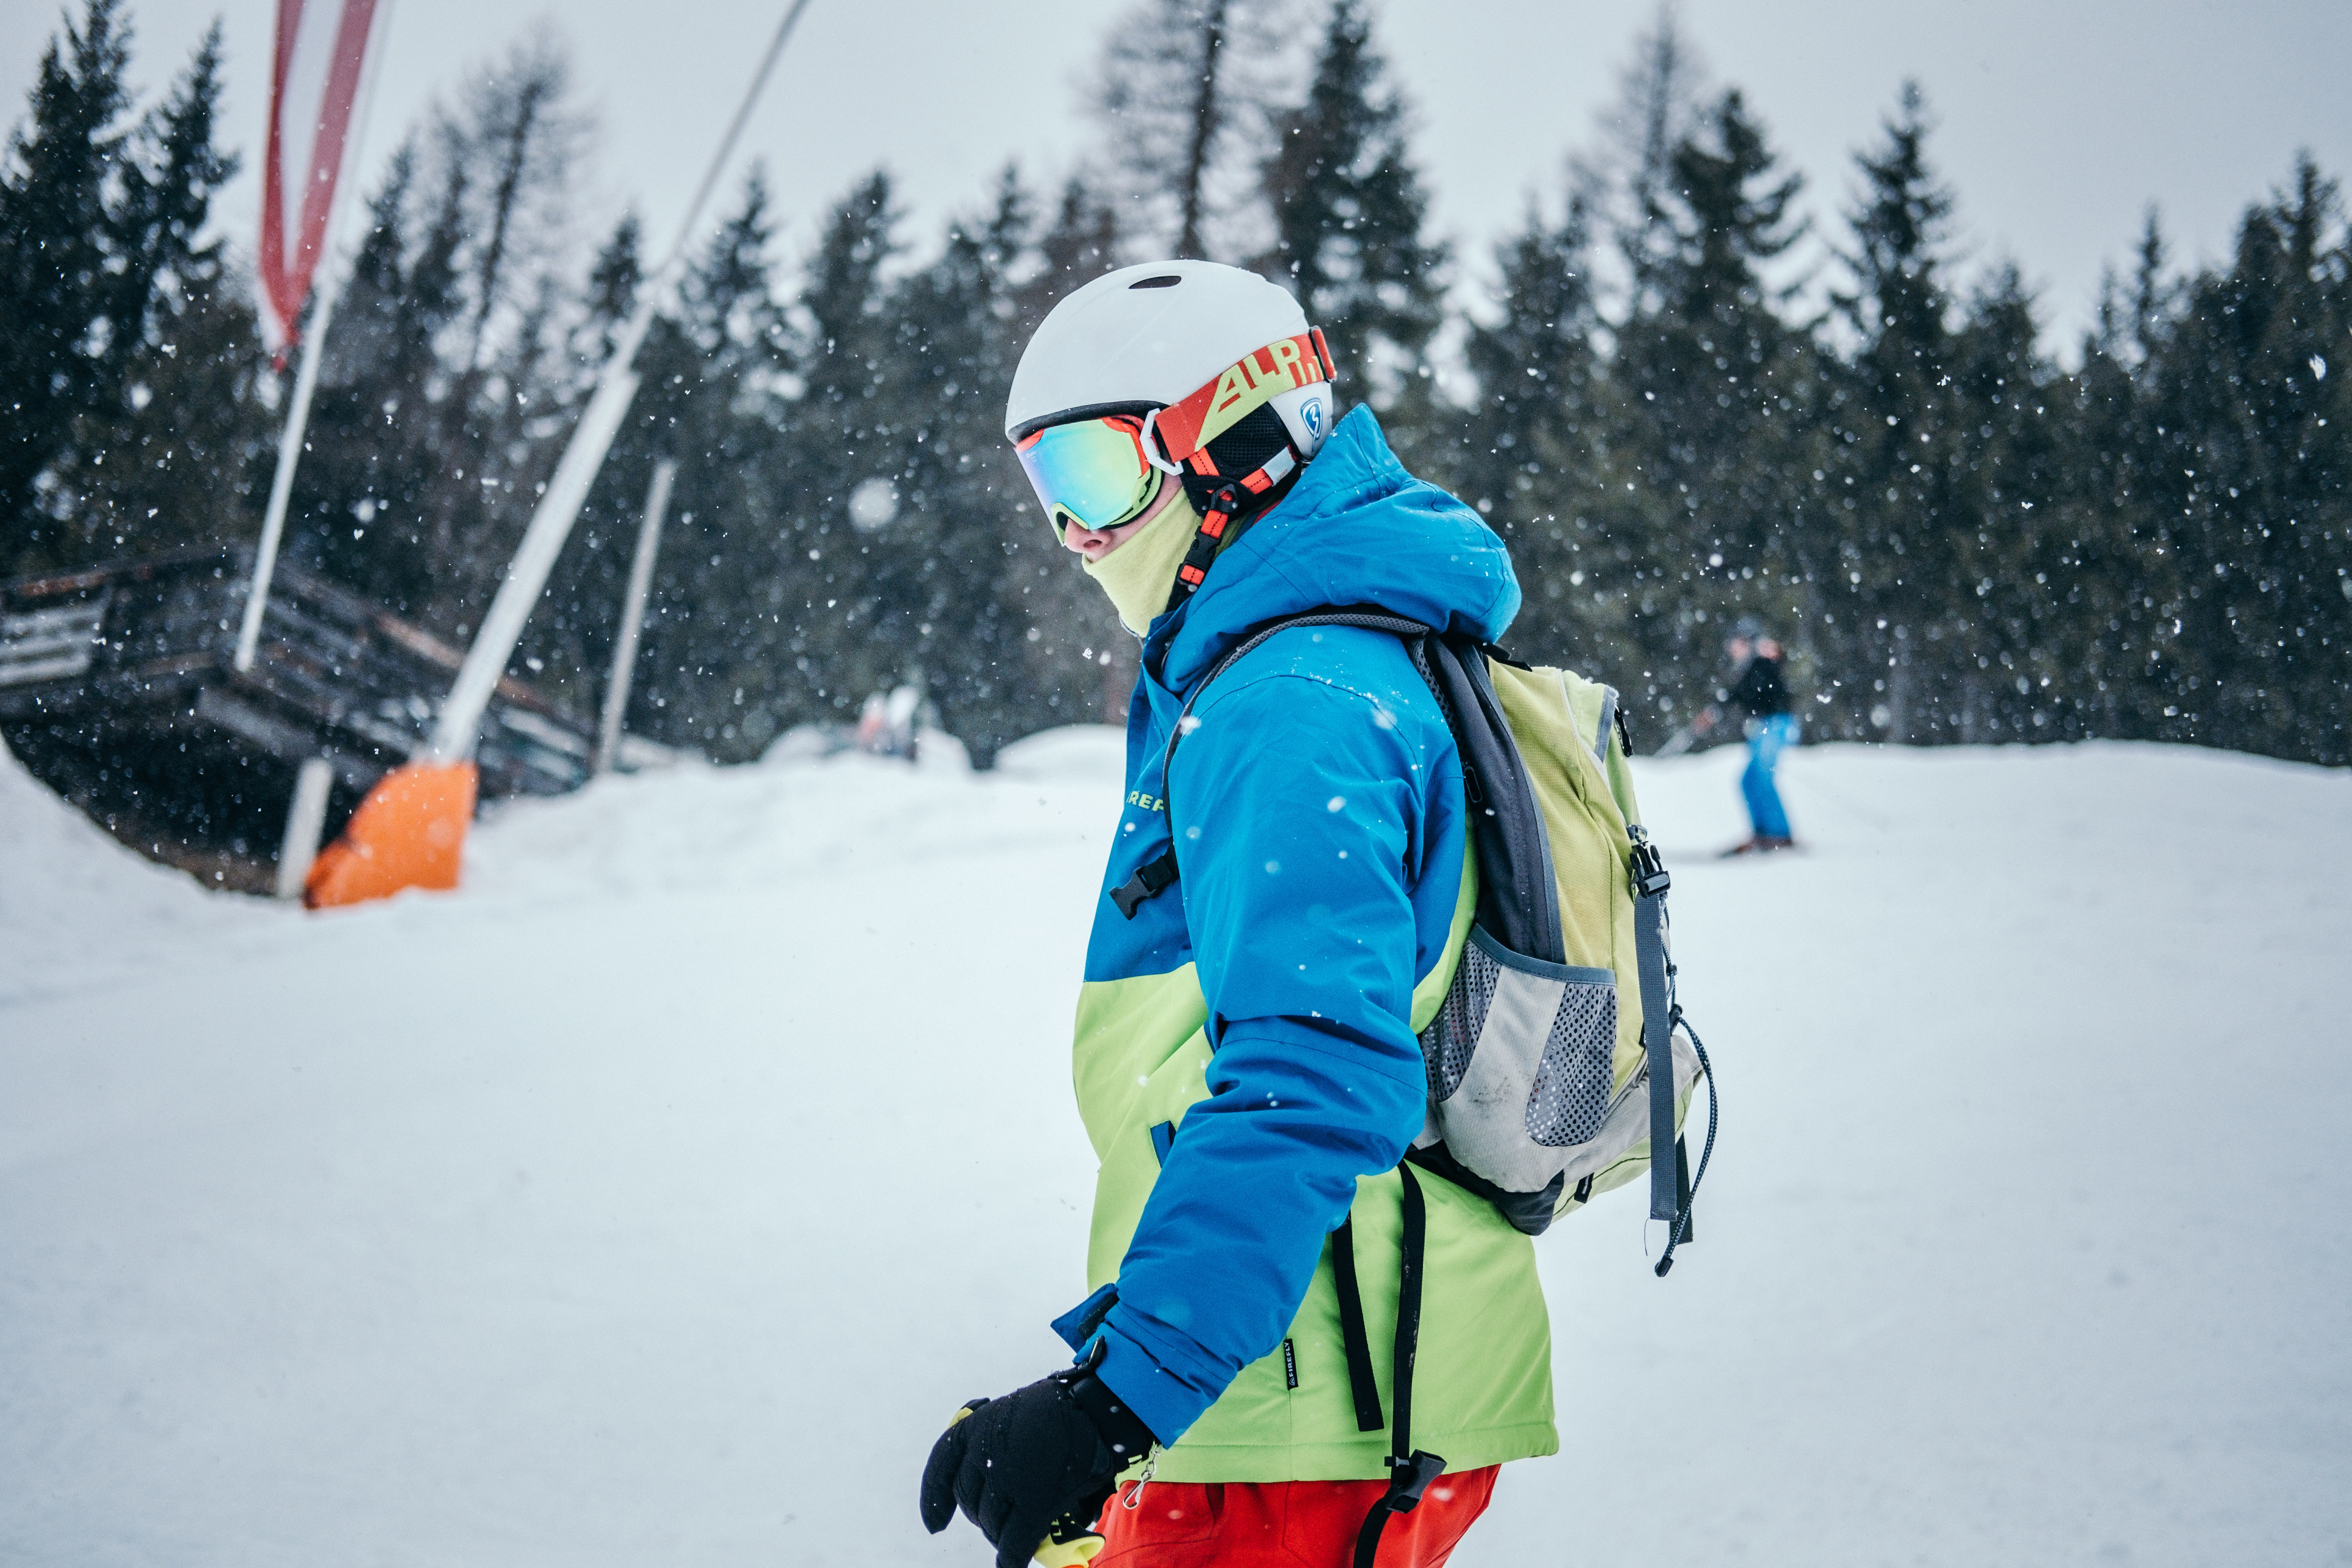 Man Skiing on the mountain with a blue jacket, neck gaiter, helmet, and goggles.